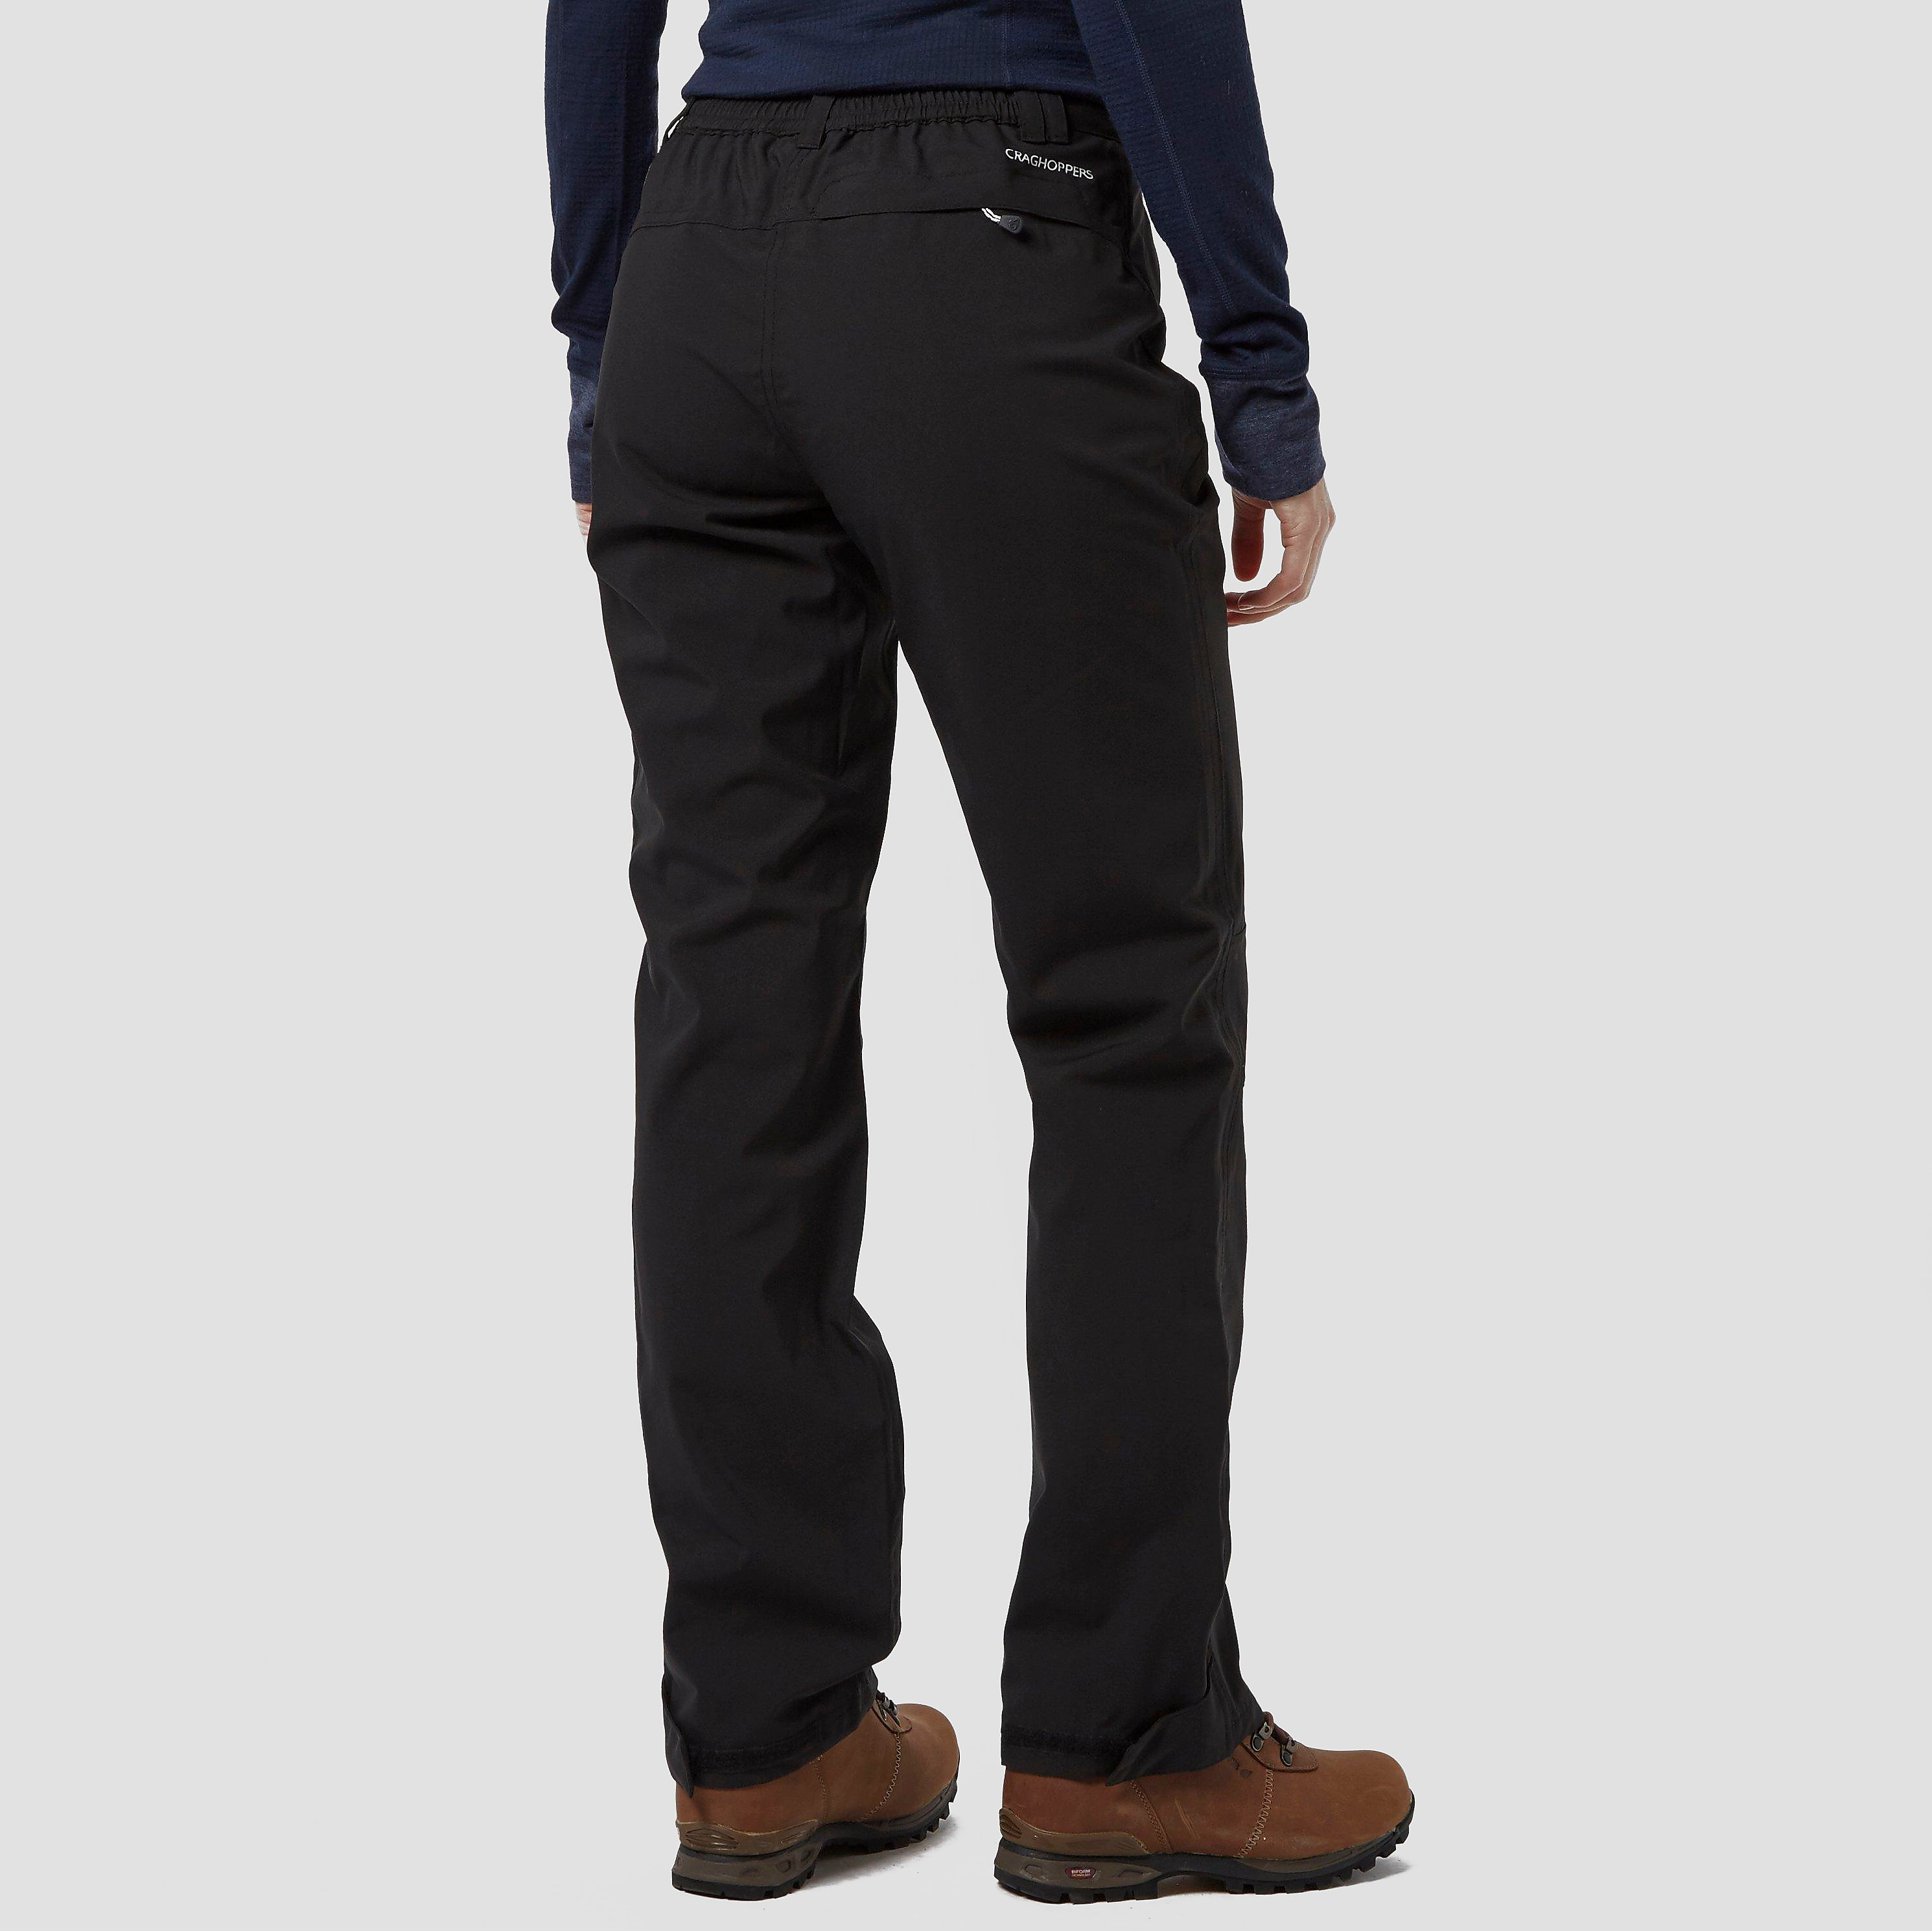 Craghoppers Airedale Women's Trousers